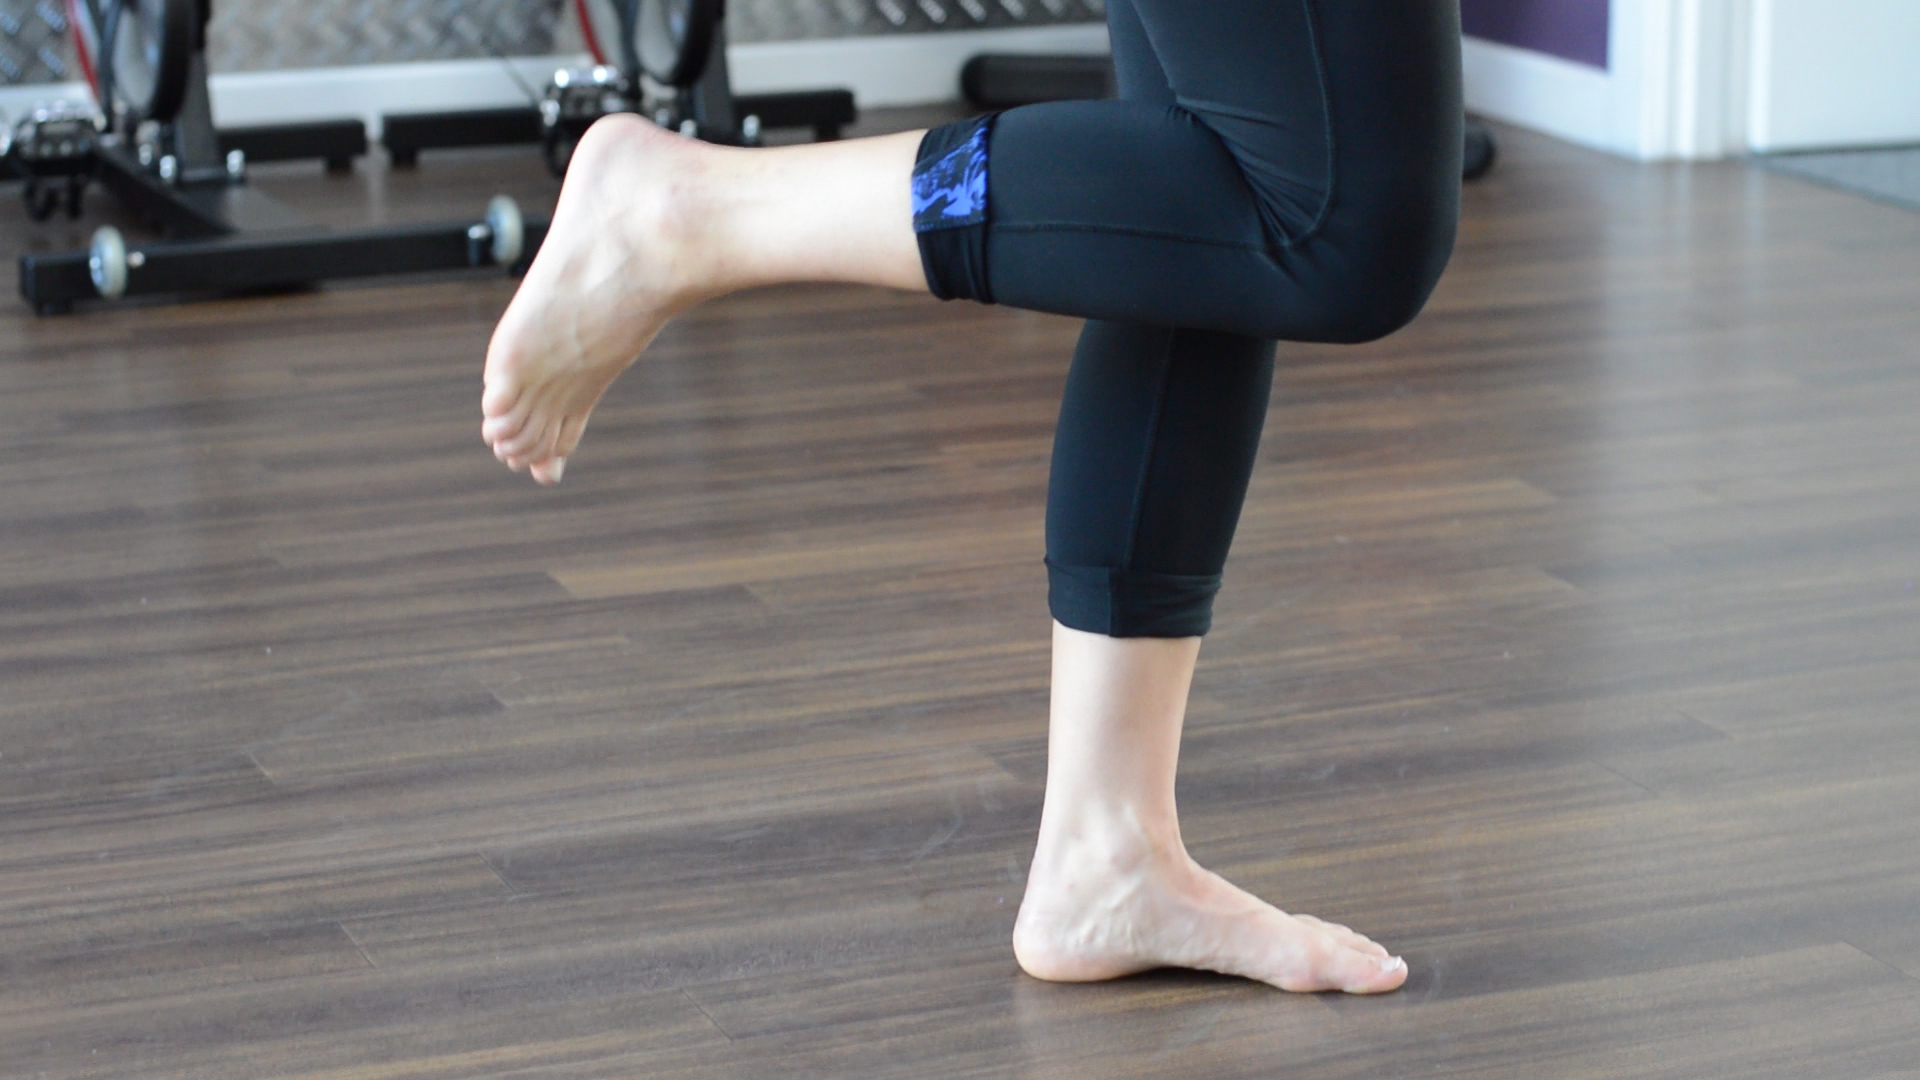 Ankle stability exercise